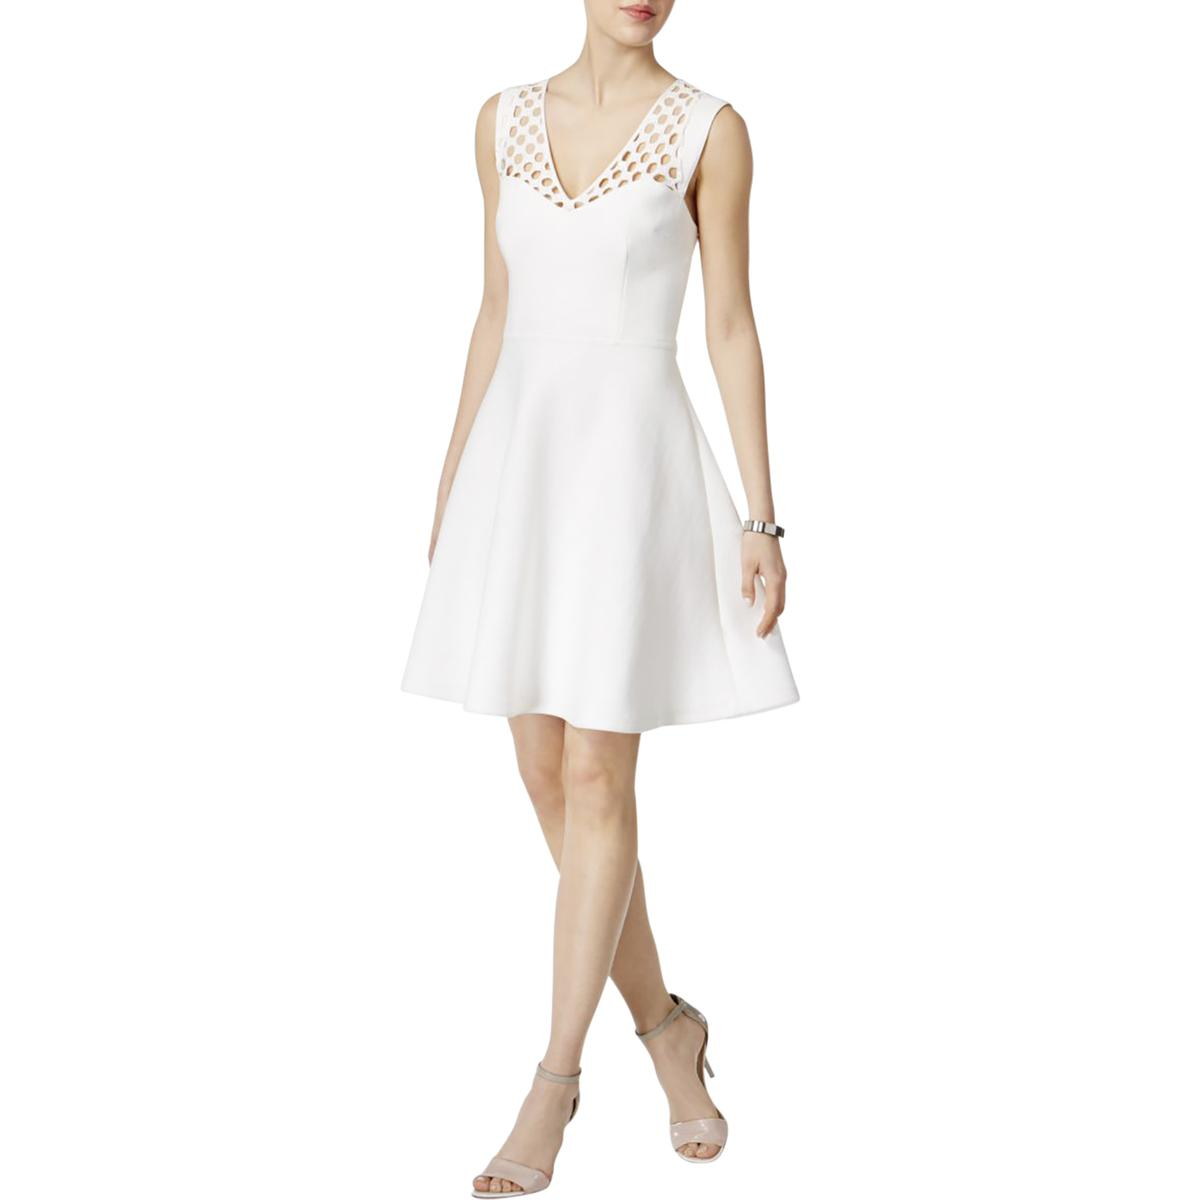 d8f444925c1 Details about Betsey Johnson Womens Ivory Party Sleeveless Cocktail Dress 8  BHFO 2075